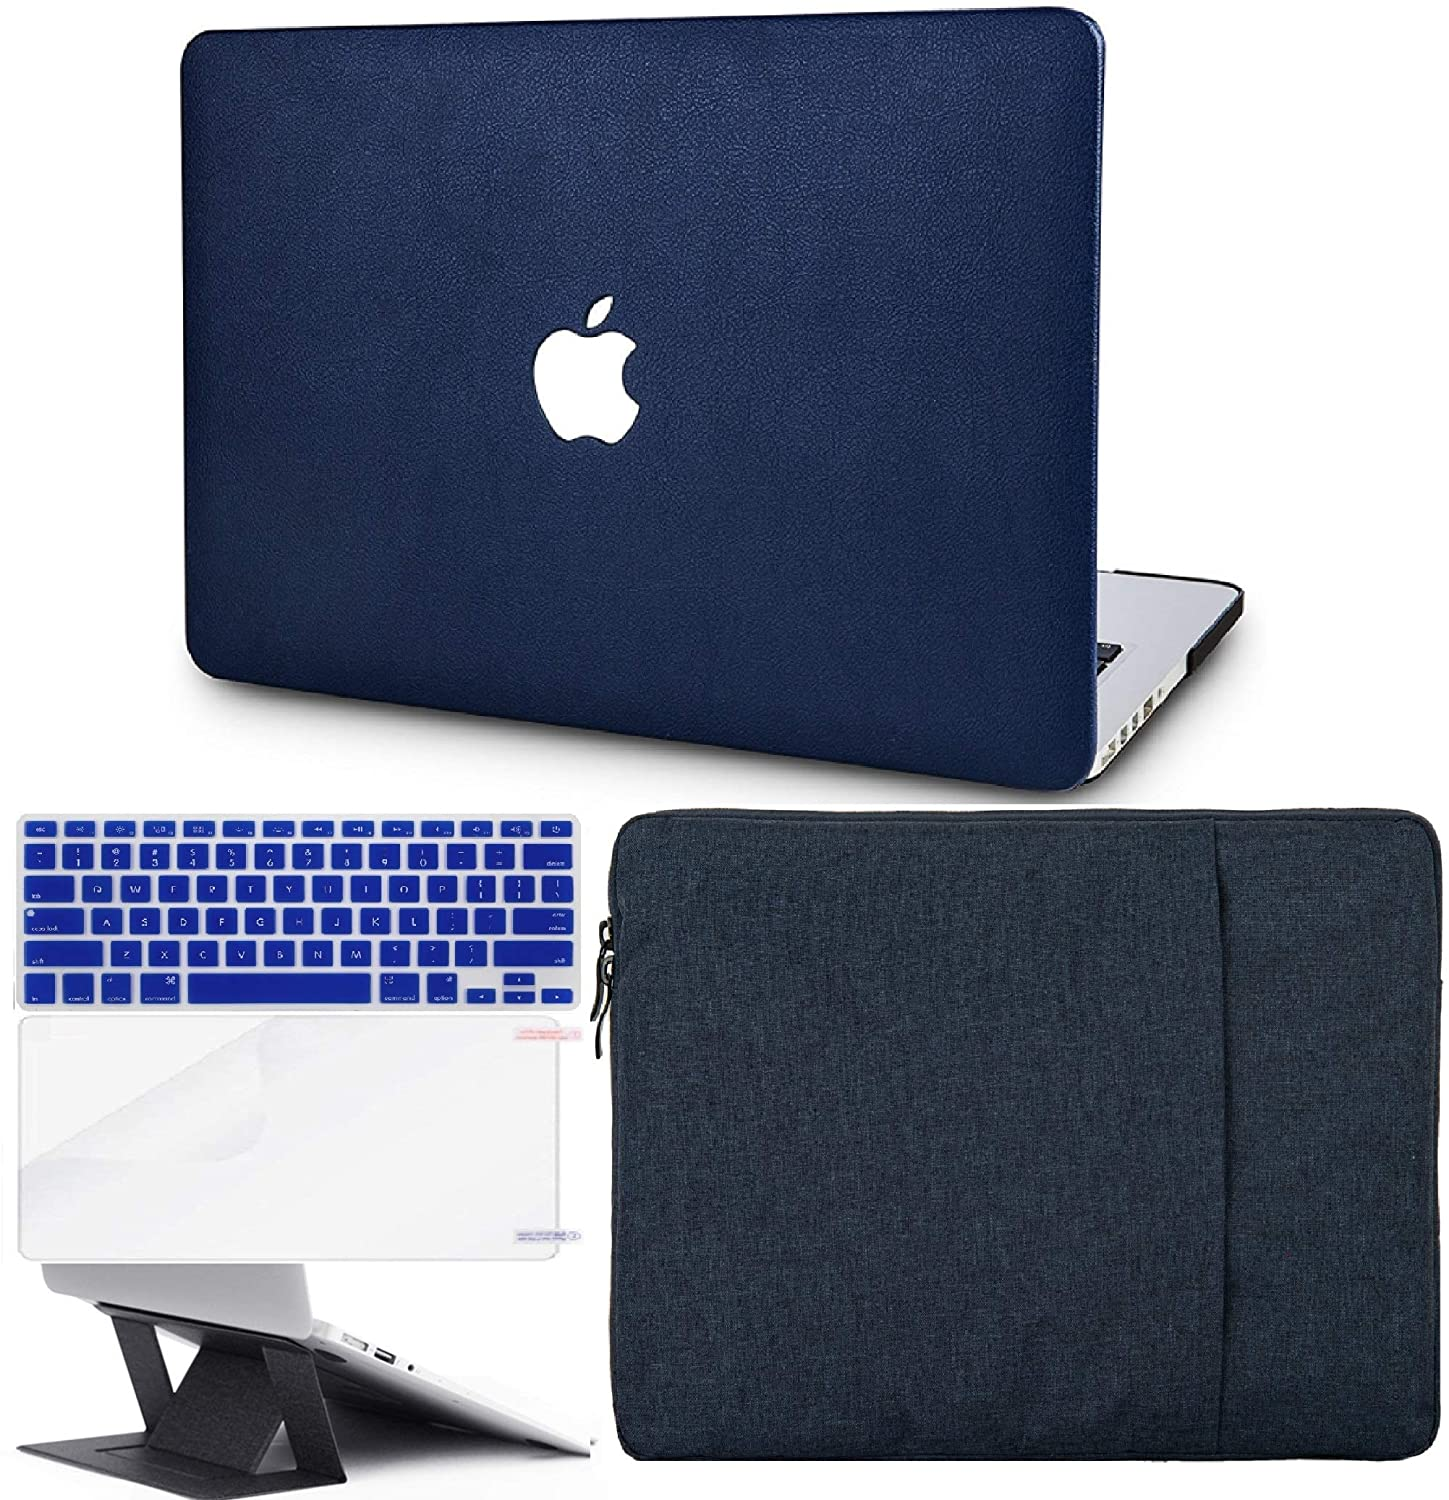 KECC Laptop Case for MacBook Air 13 w/Keyboard Cover + Sleeve + Screen Protector + Laptop Stand (5 in 1 Bundle) ltalian Leather Case A1990/A1707 (Dark Blue Leather)